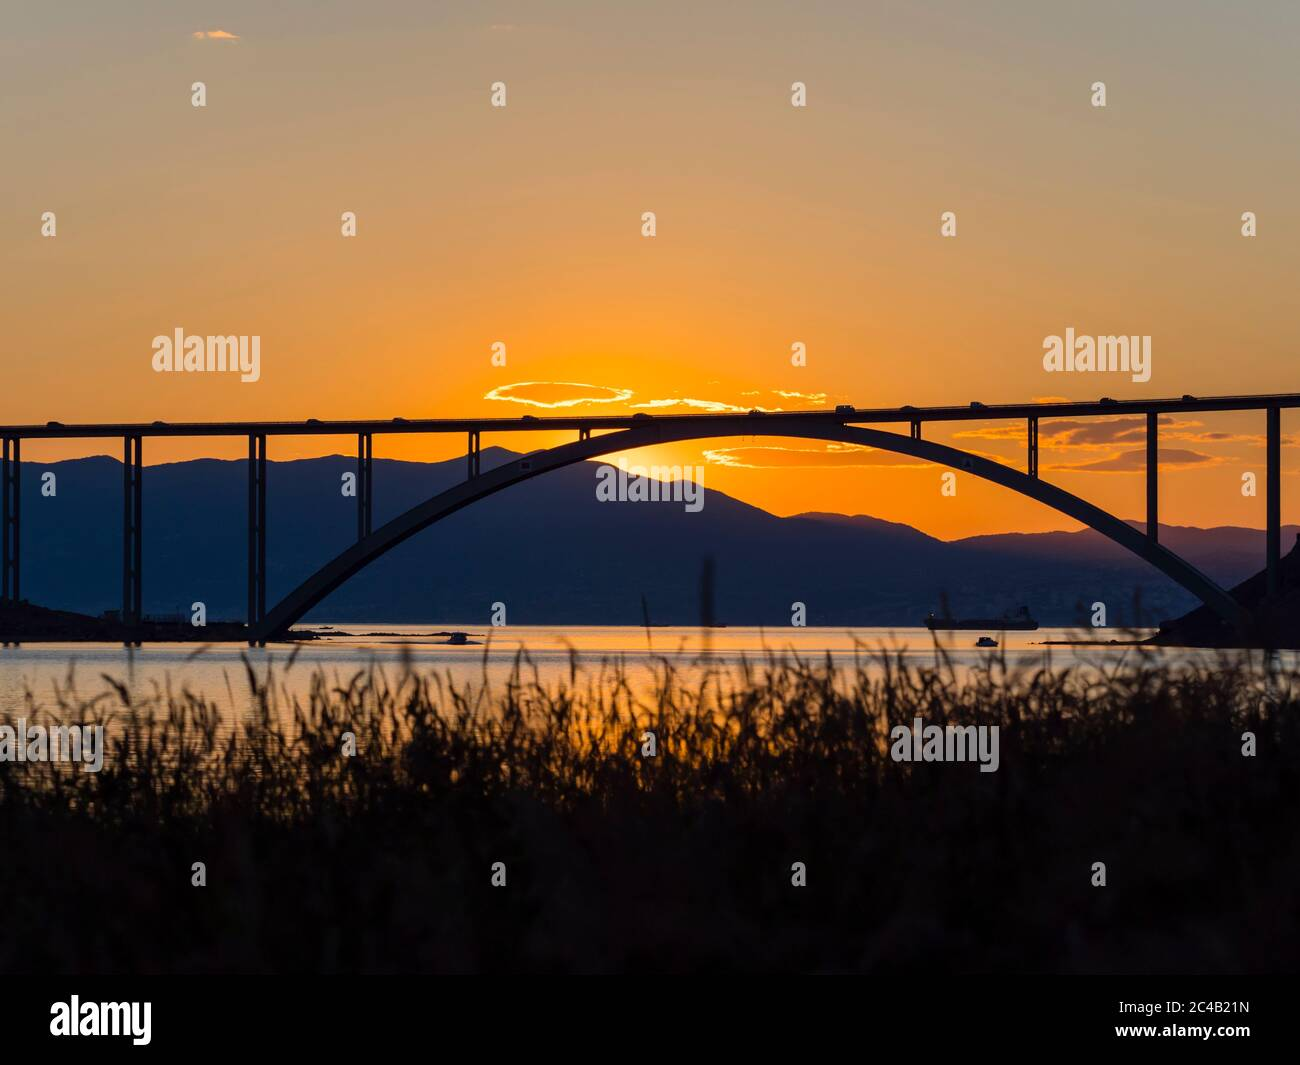 Sunset landscape silhouette silhouetting grass in foreground bridge mainland to island Krk Croatia Stock Photo